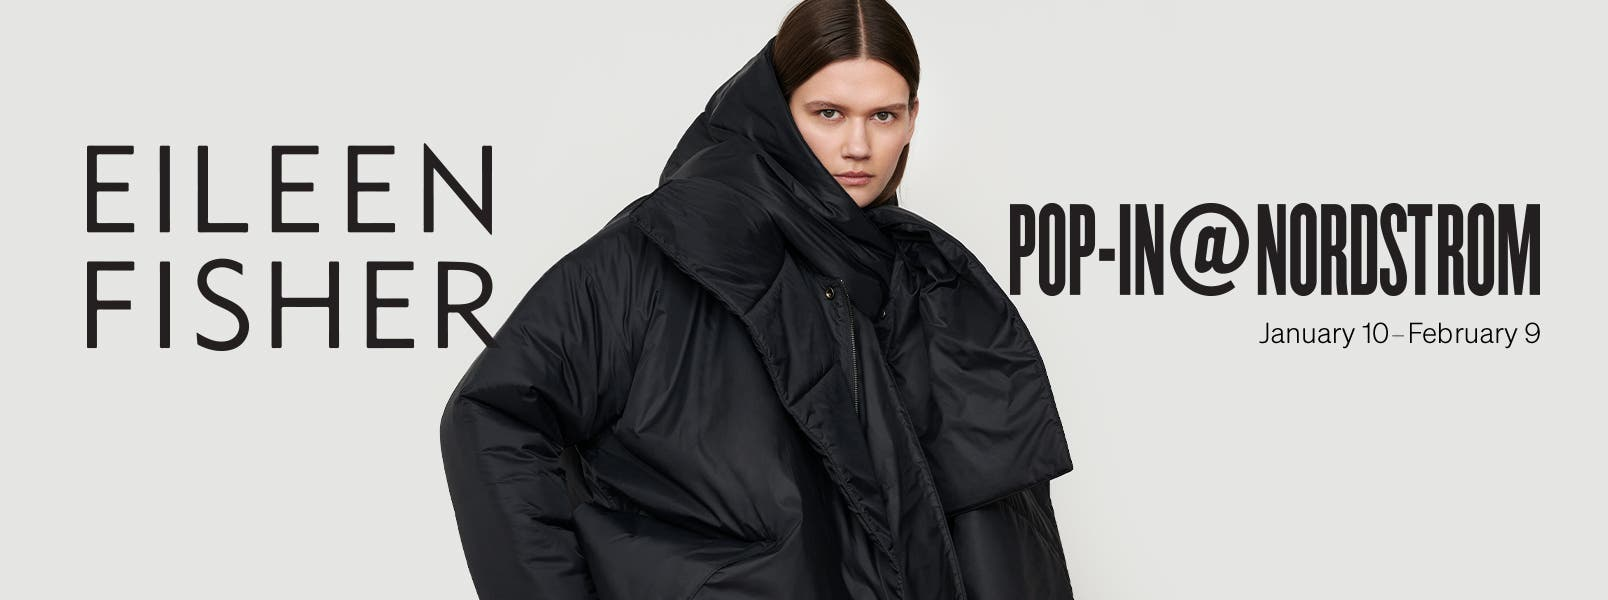 Pop-In@Nordstrom x Eileen Fisher, January 10 to February 9.